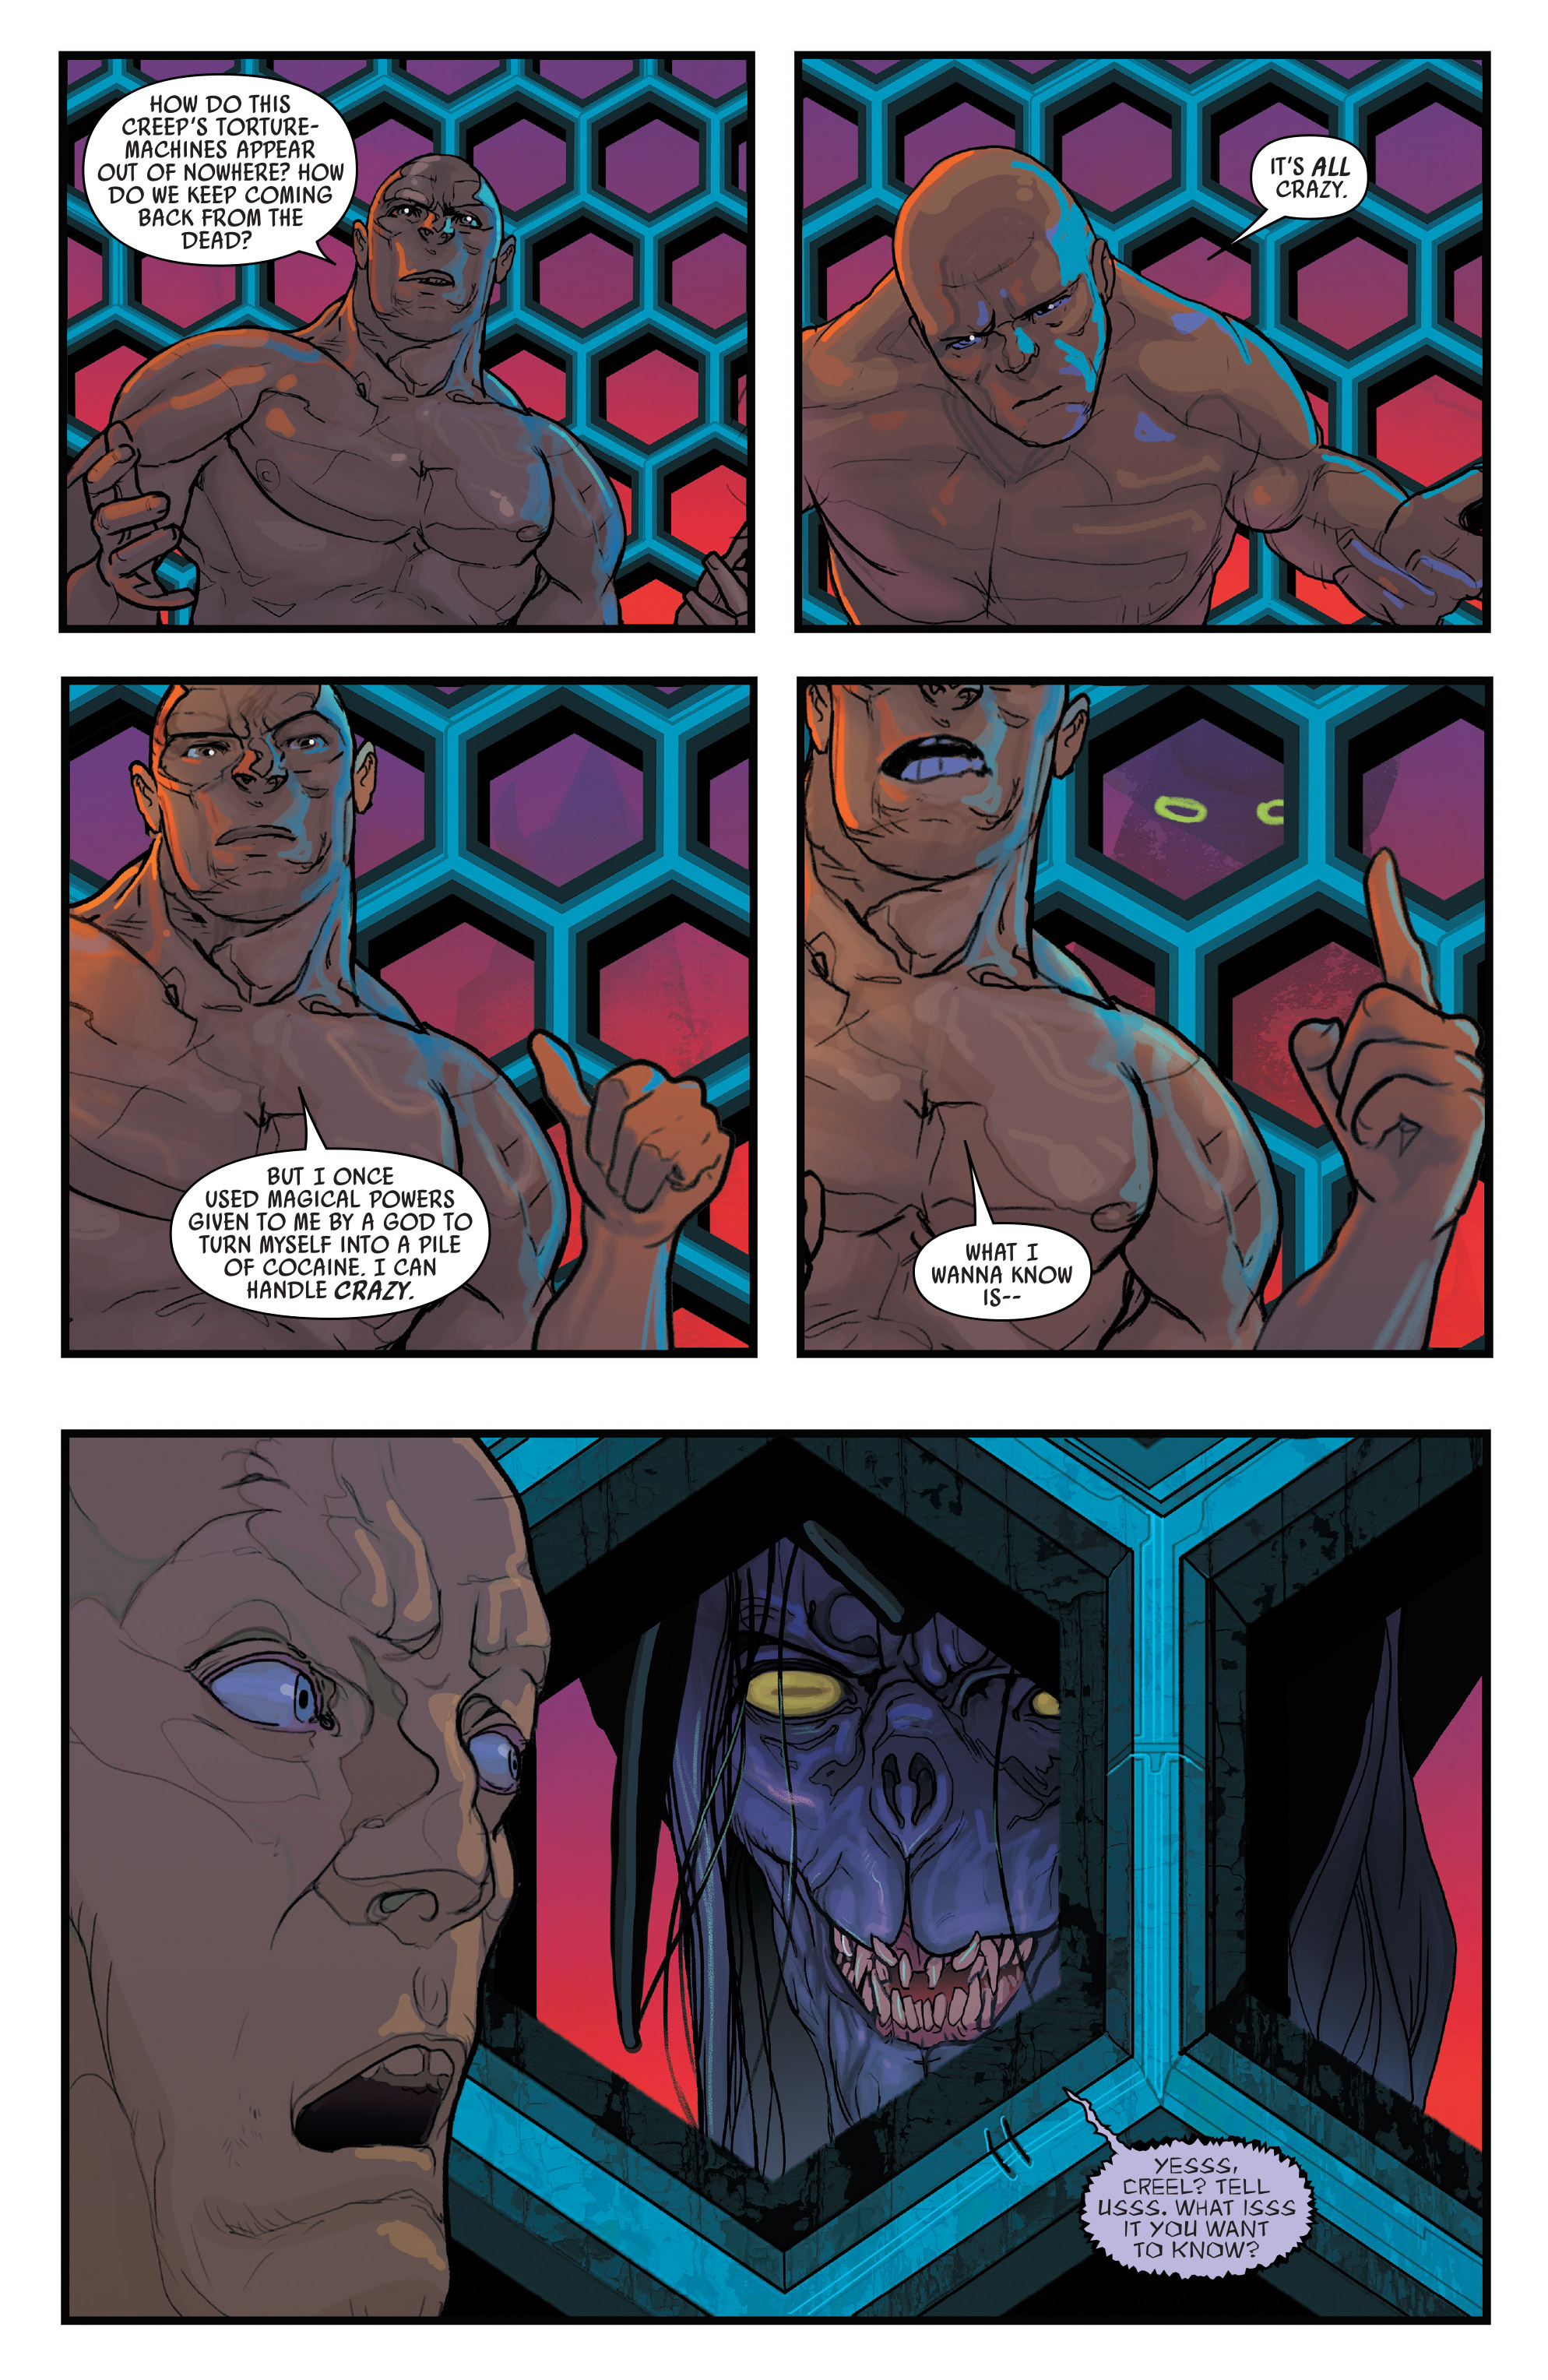 Read online Black Bolt comic -  Issue #2 - 9